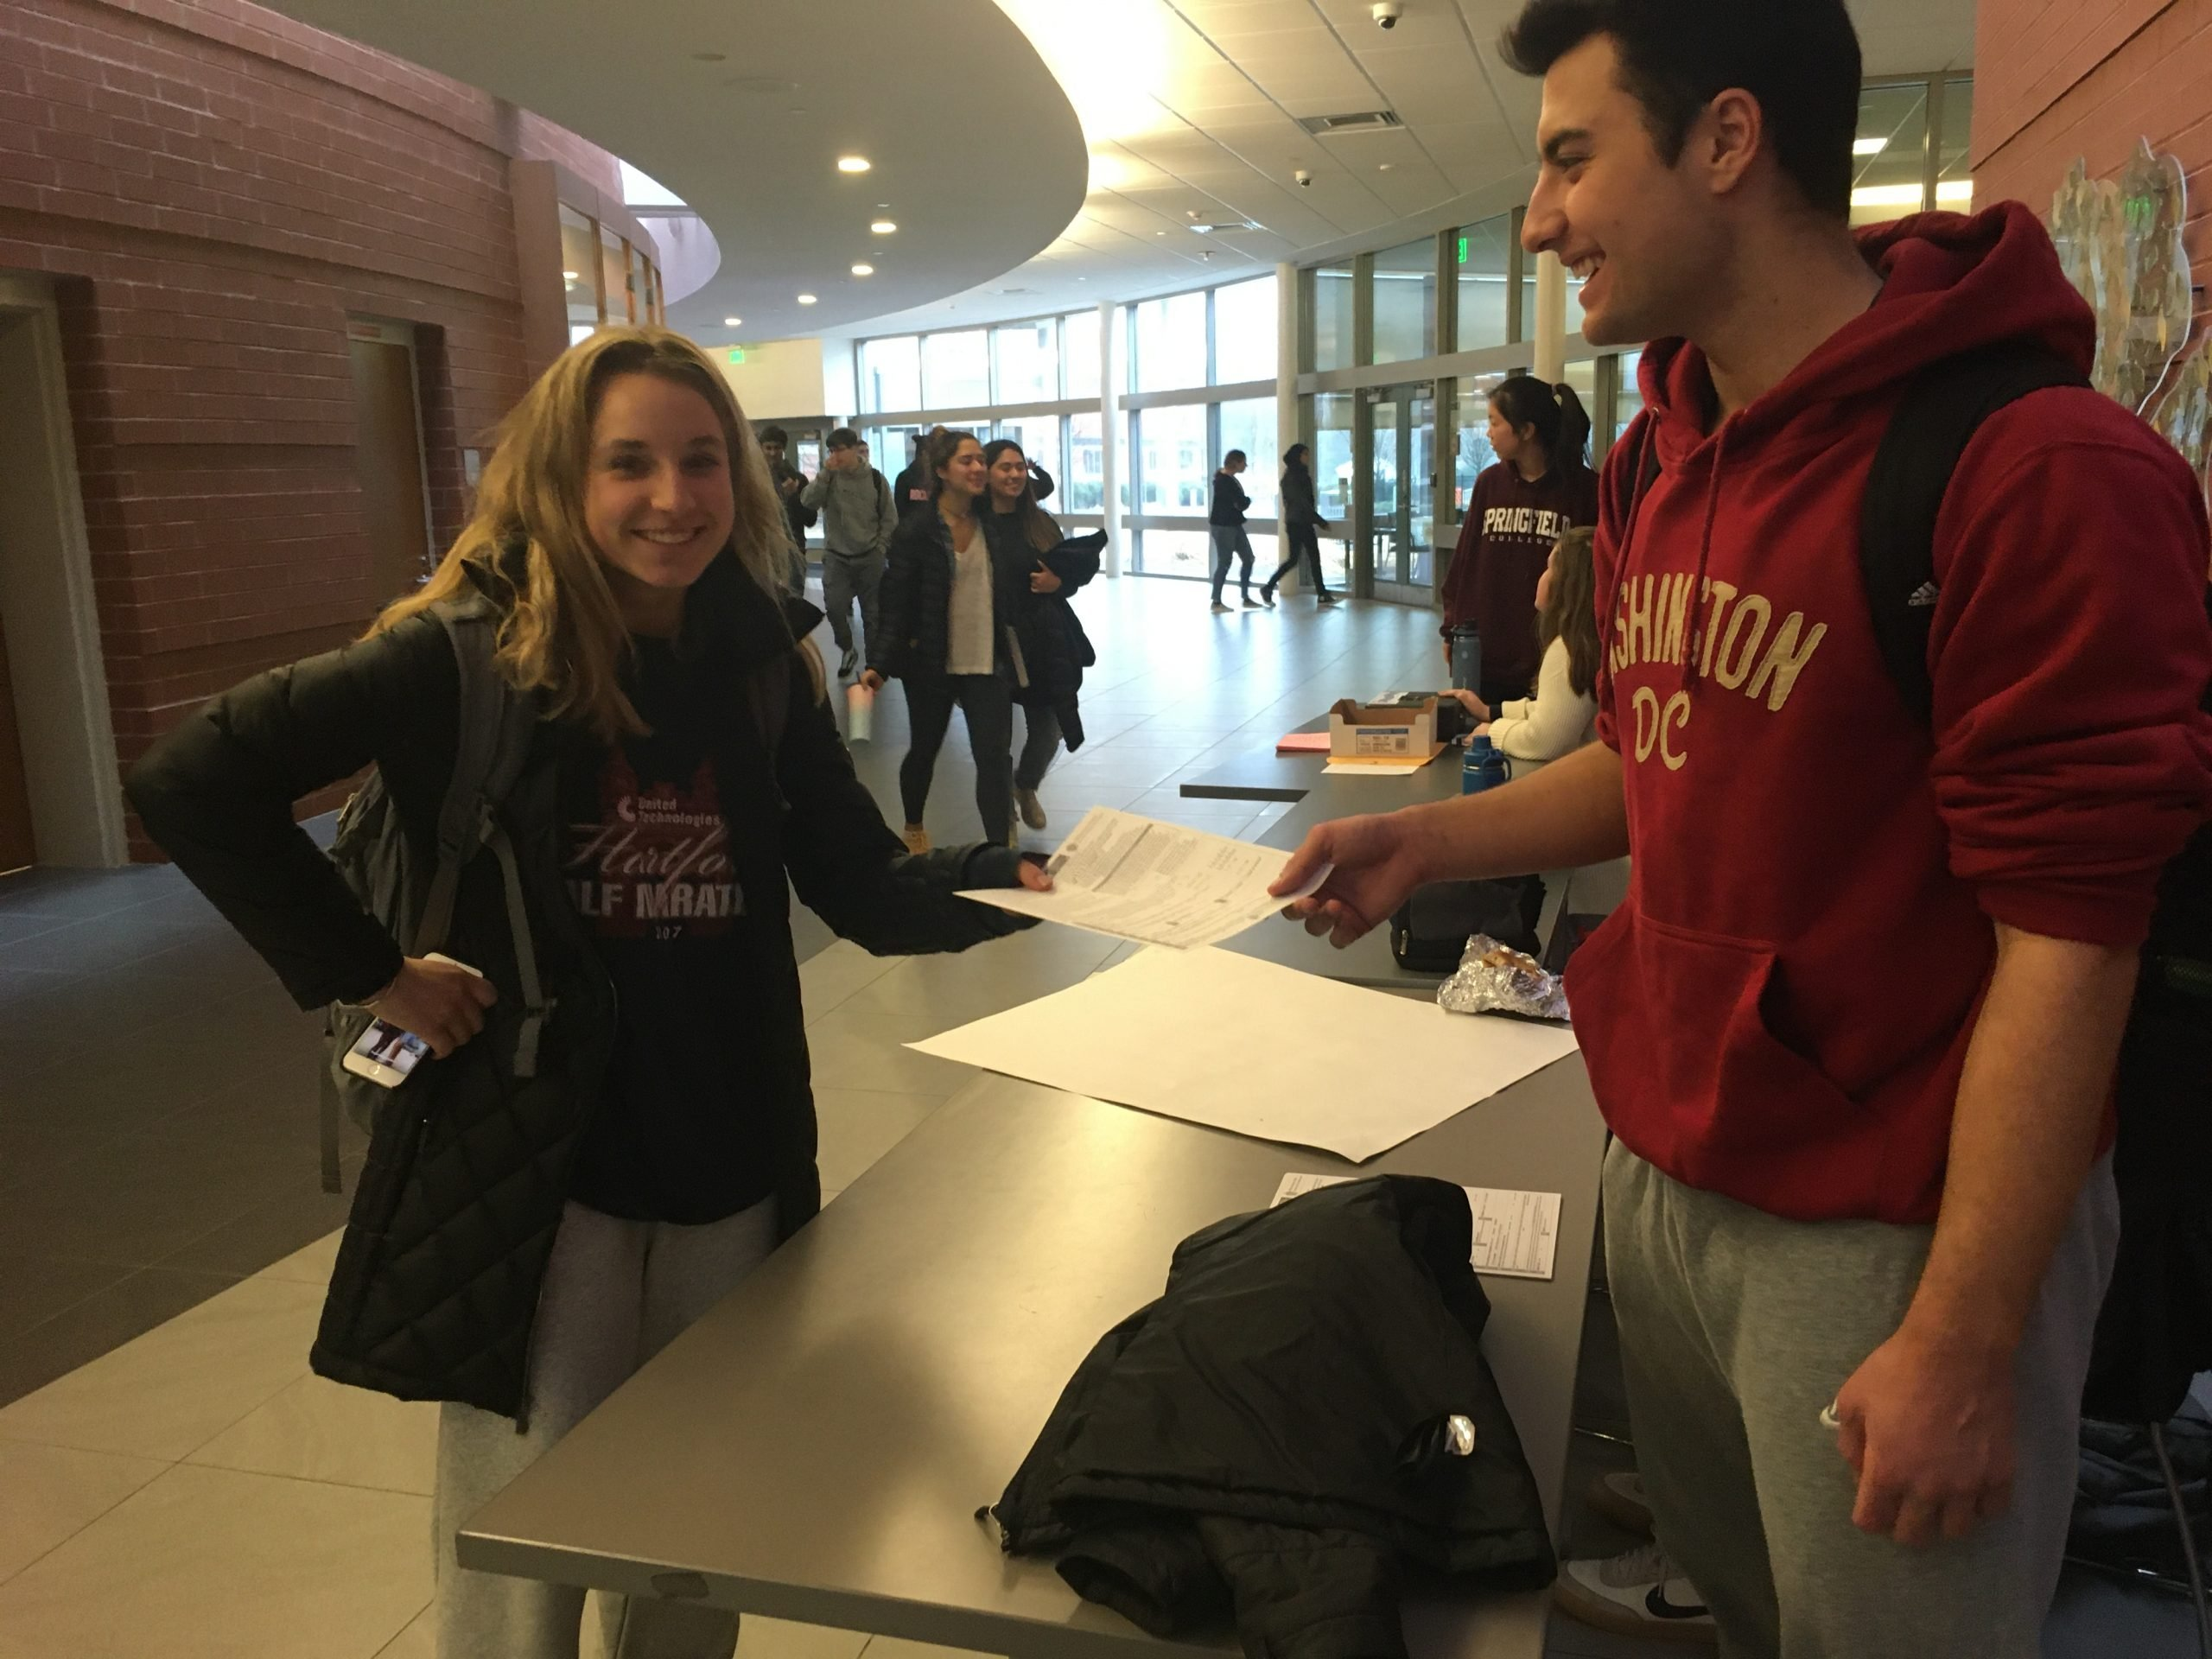 Junior Hannah Adams accepts a voting registration sheet from Thomas Coulouras at lunch.